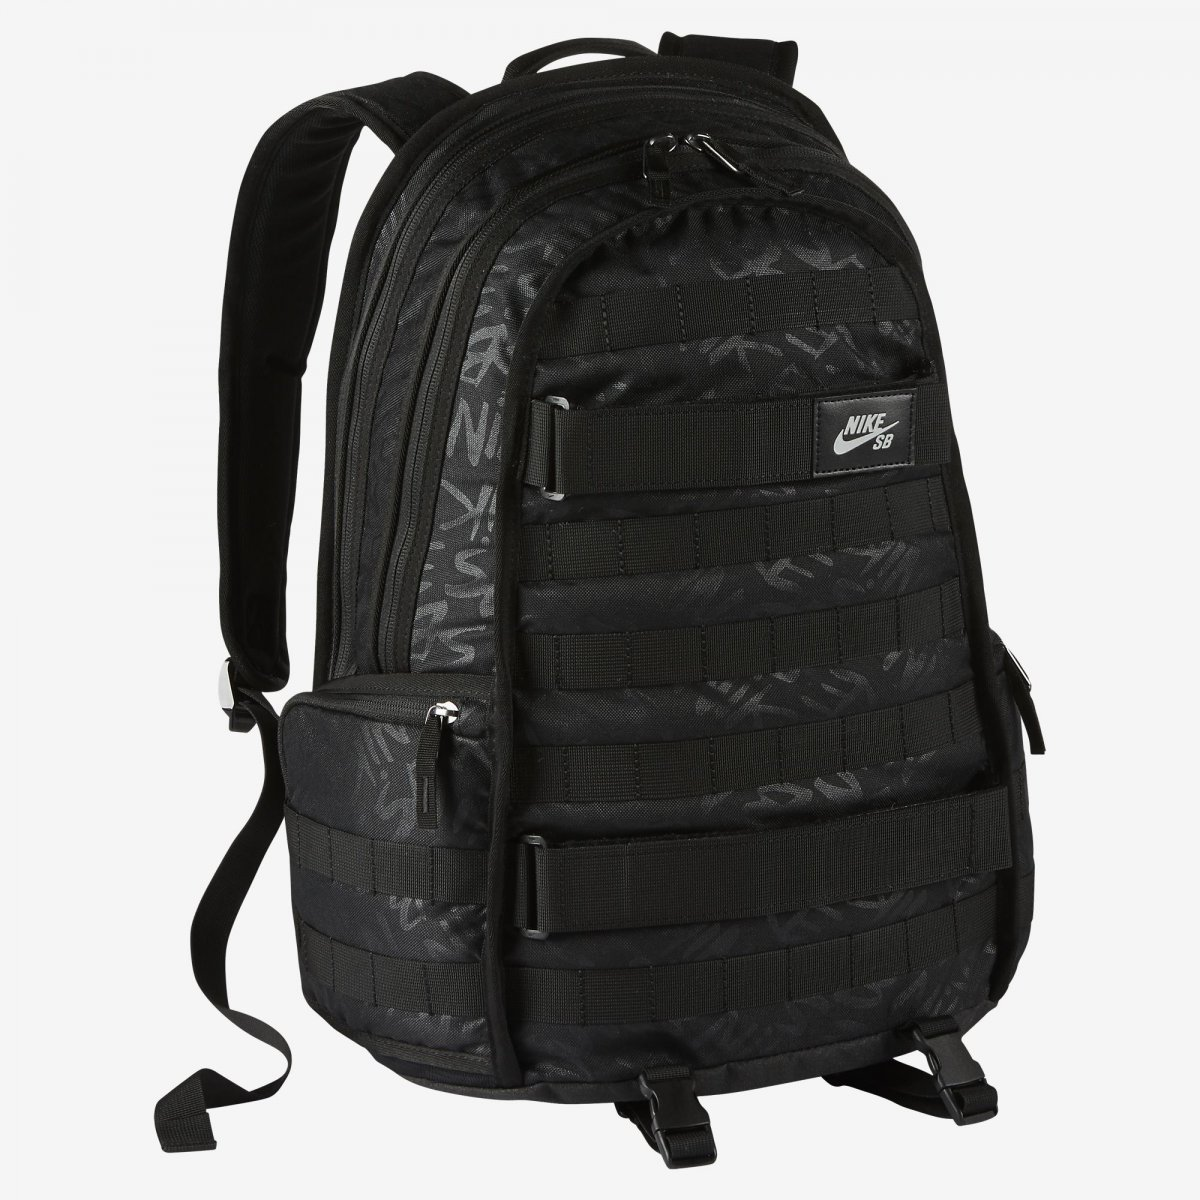 48ca6ed78b47 Mochila Nike SB RPM Backpack